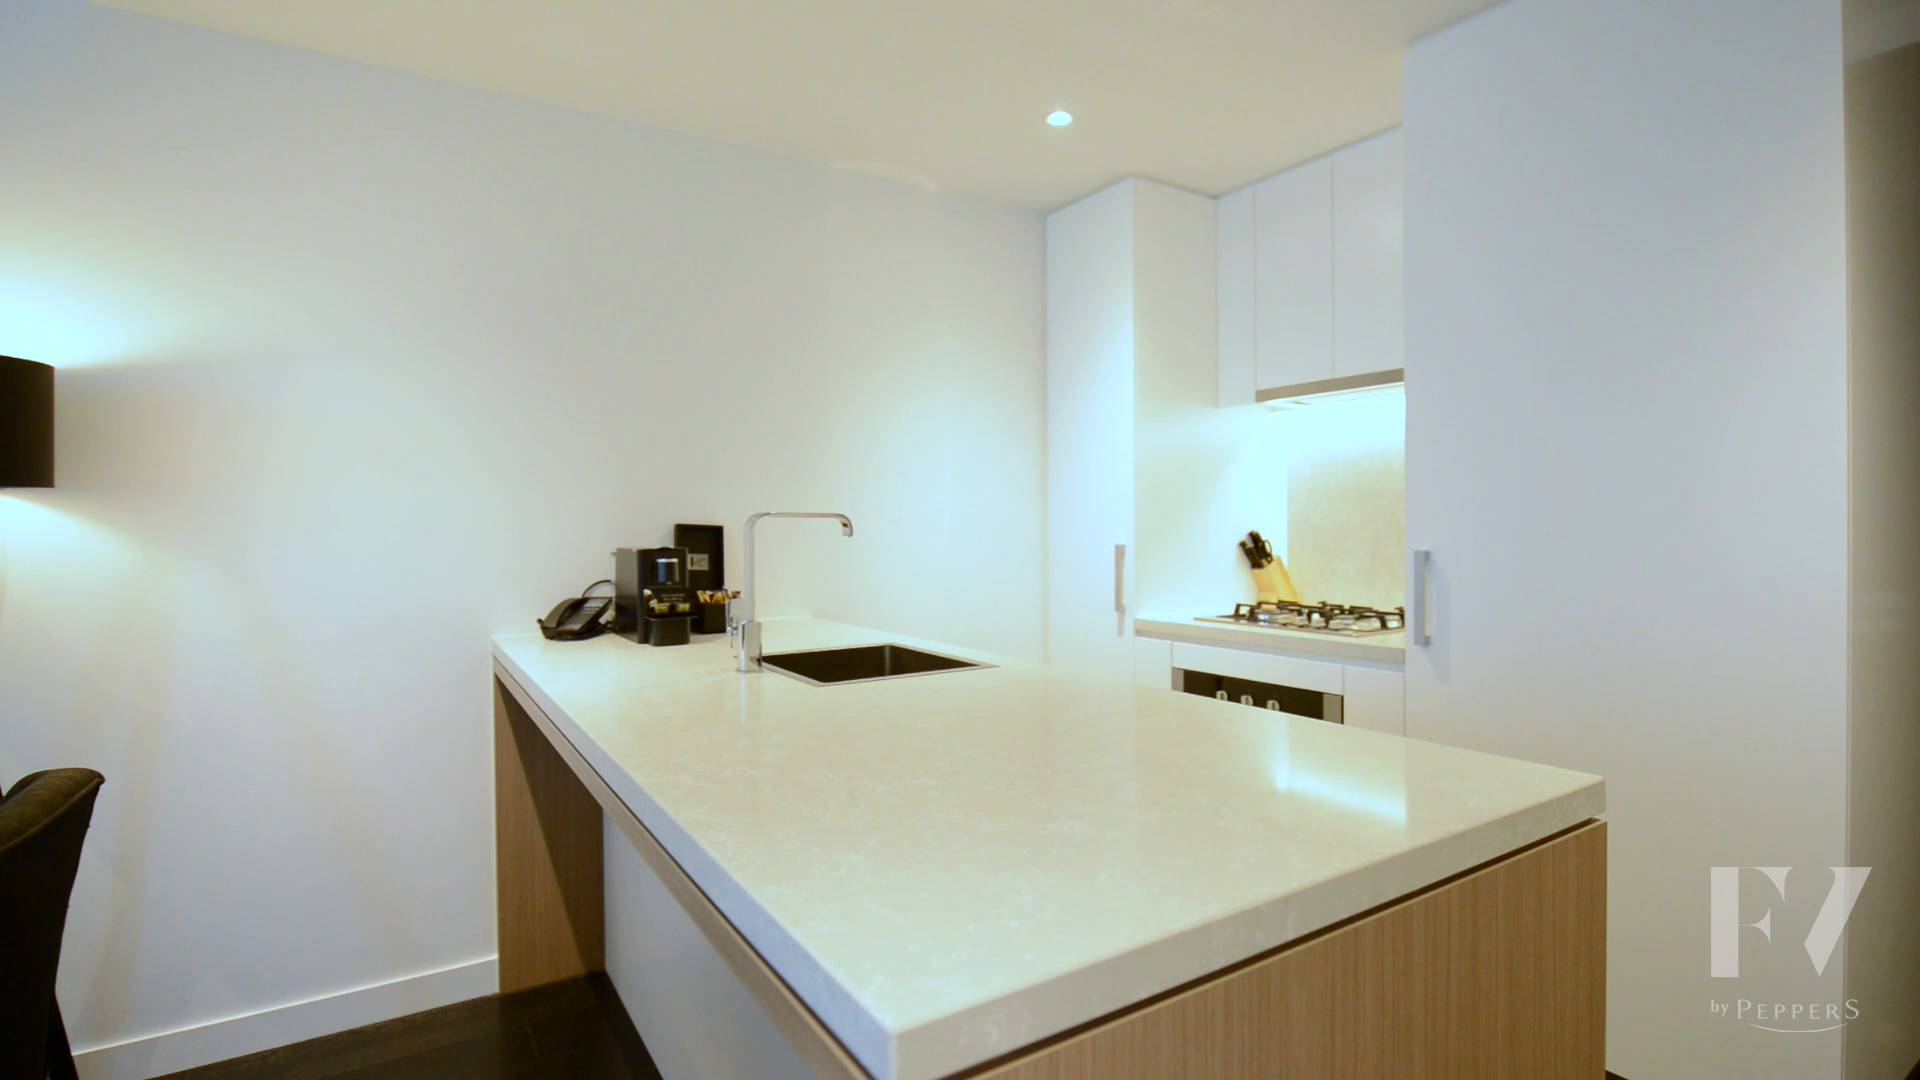 FV by Peppers - Fortitude Valley - MantraHotels.com